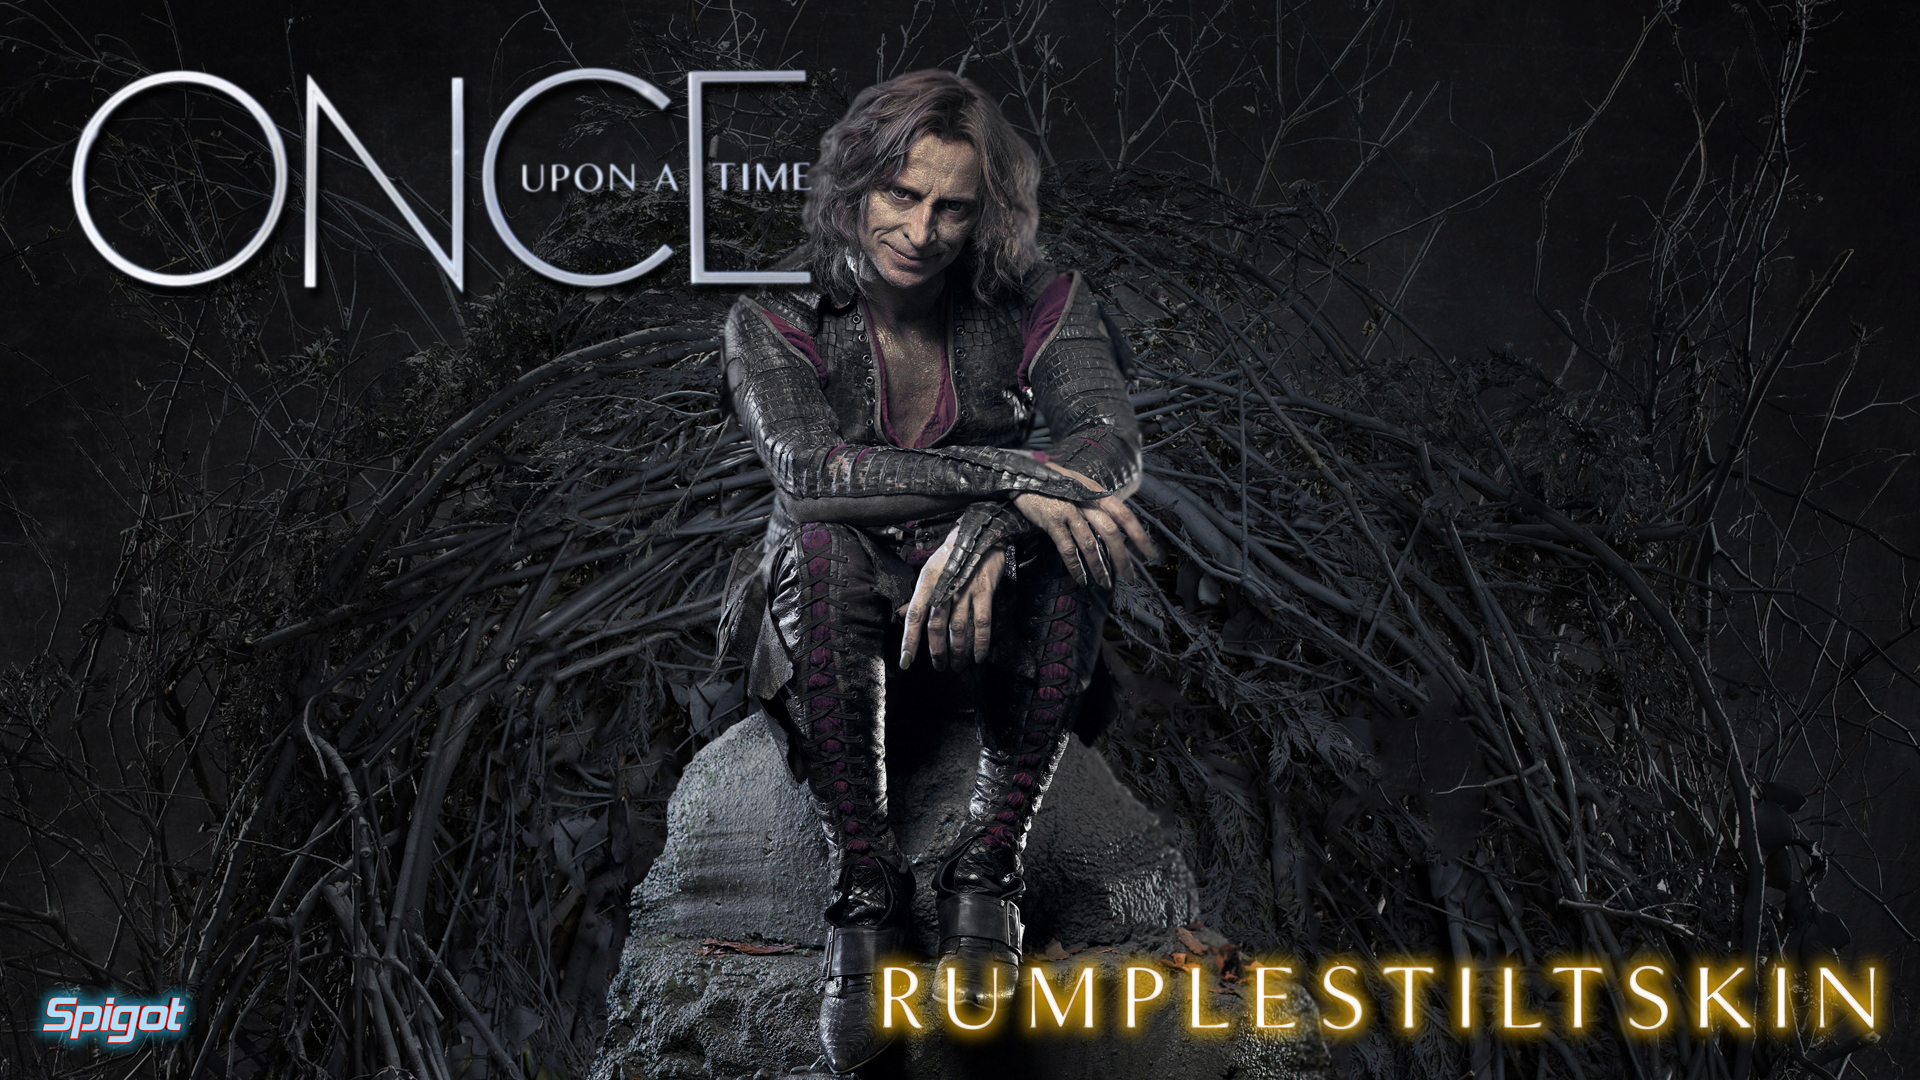 Once Upon A Time Rumpelstiltskin Wallpaper George Spigot S Blog